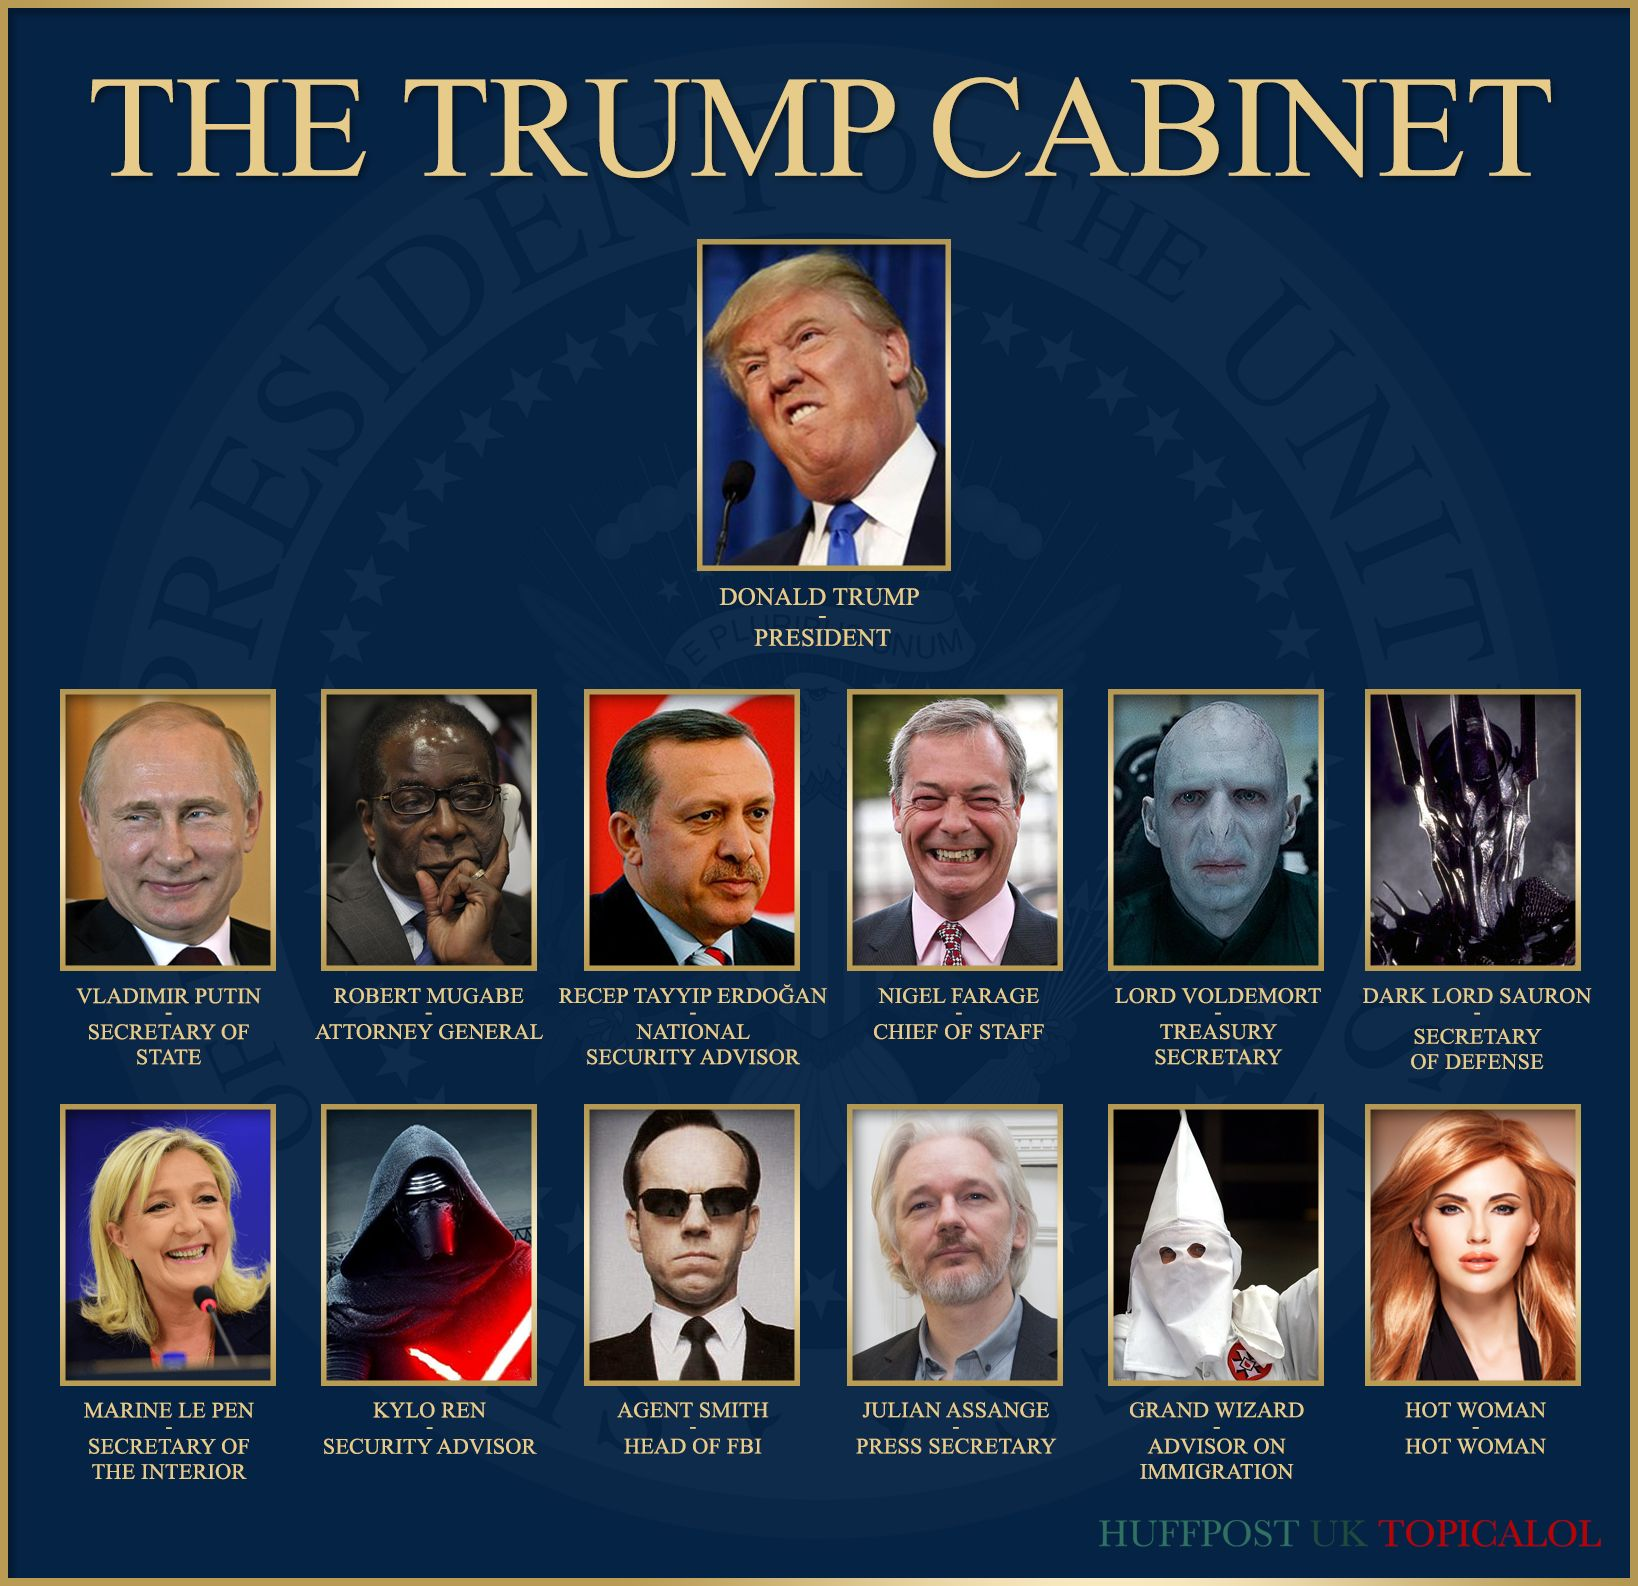 Donald Trump's New Cabinet Is Erm...